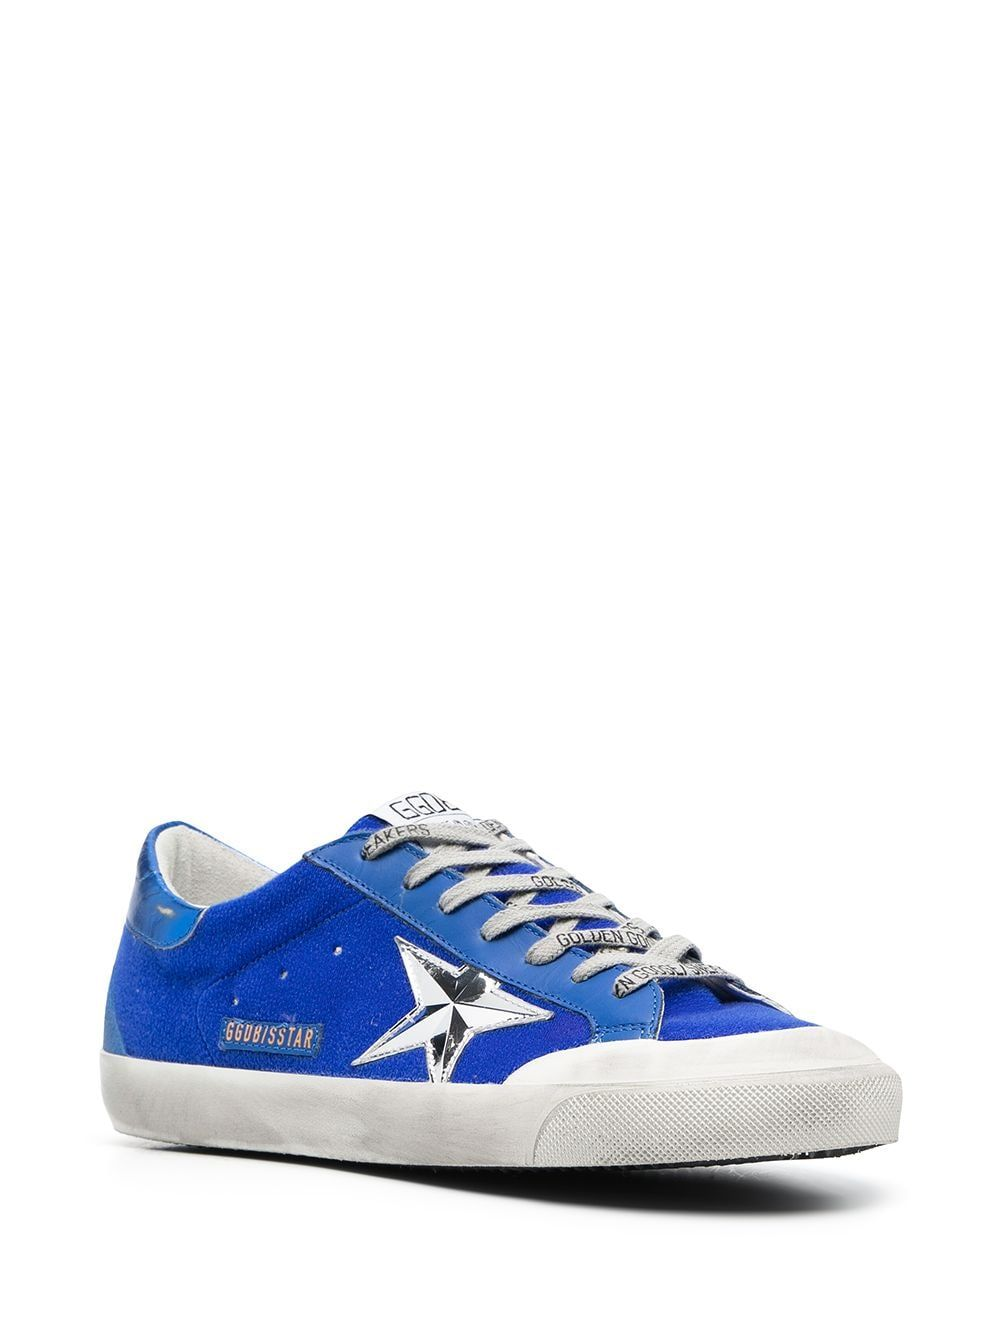 GOLDEN GOOSE Leathers GOLDEN GOOSE MEN'S BLUE LEATHER SNEAKERS